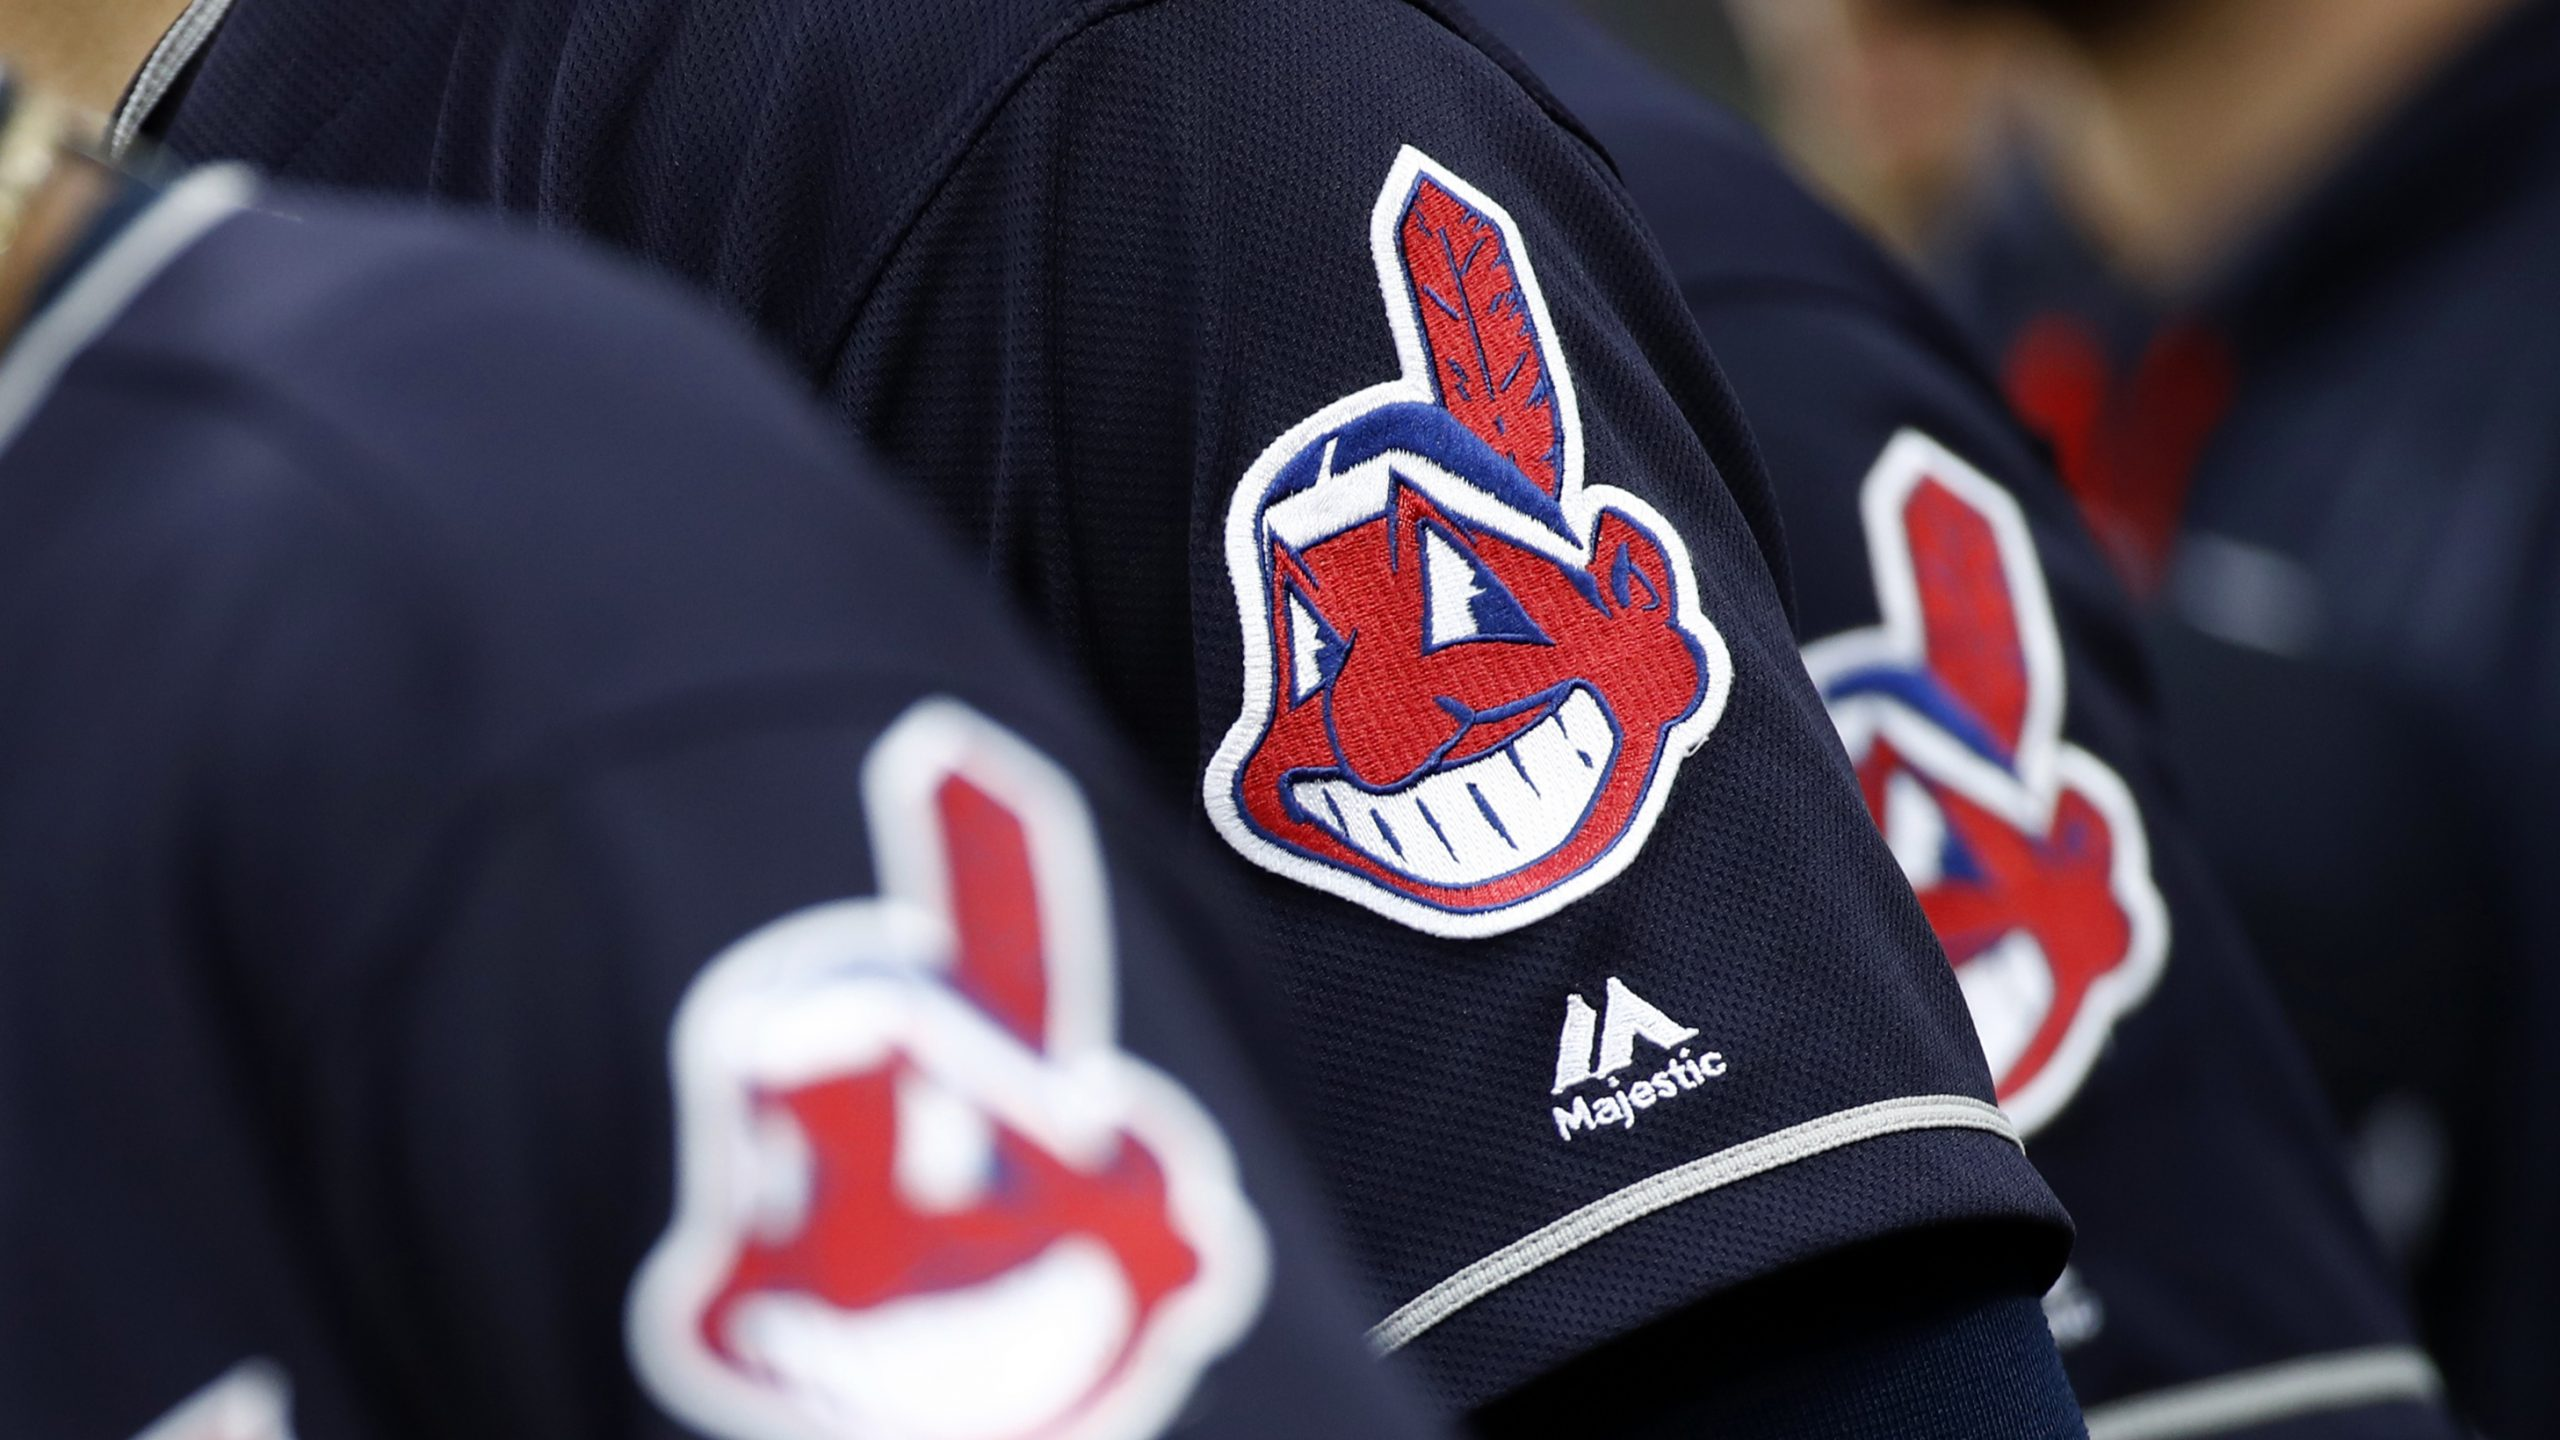 cleveland-indians-will-determine-best-path-forward-regarding-team-name